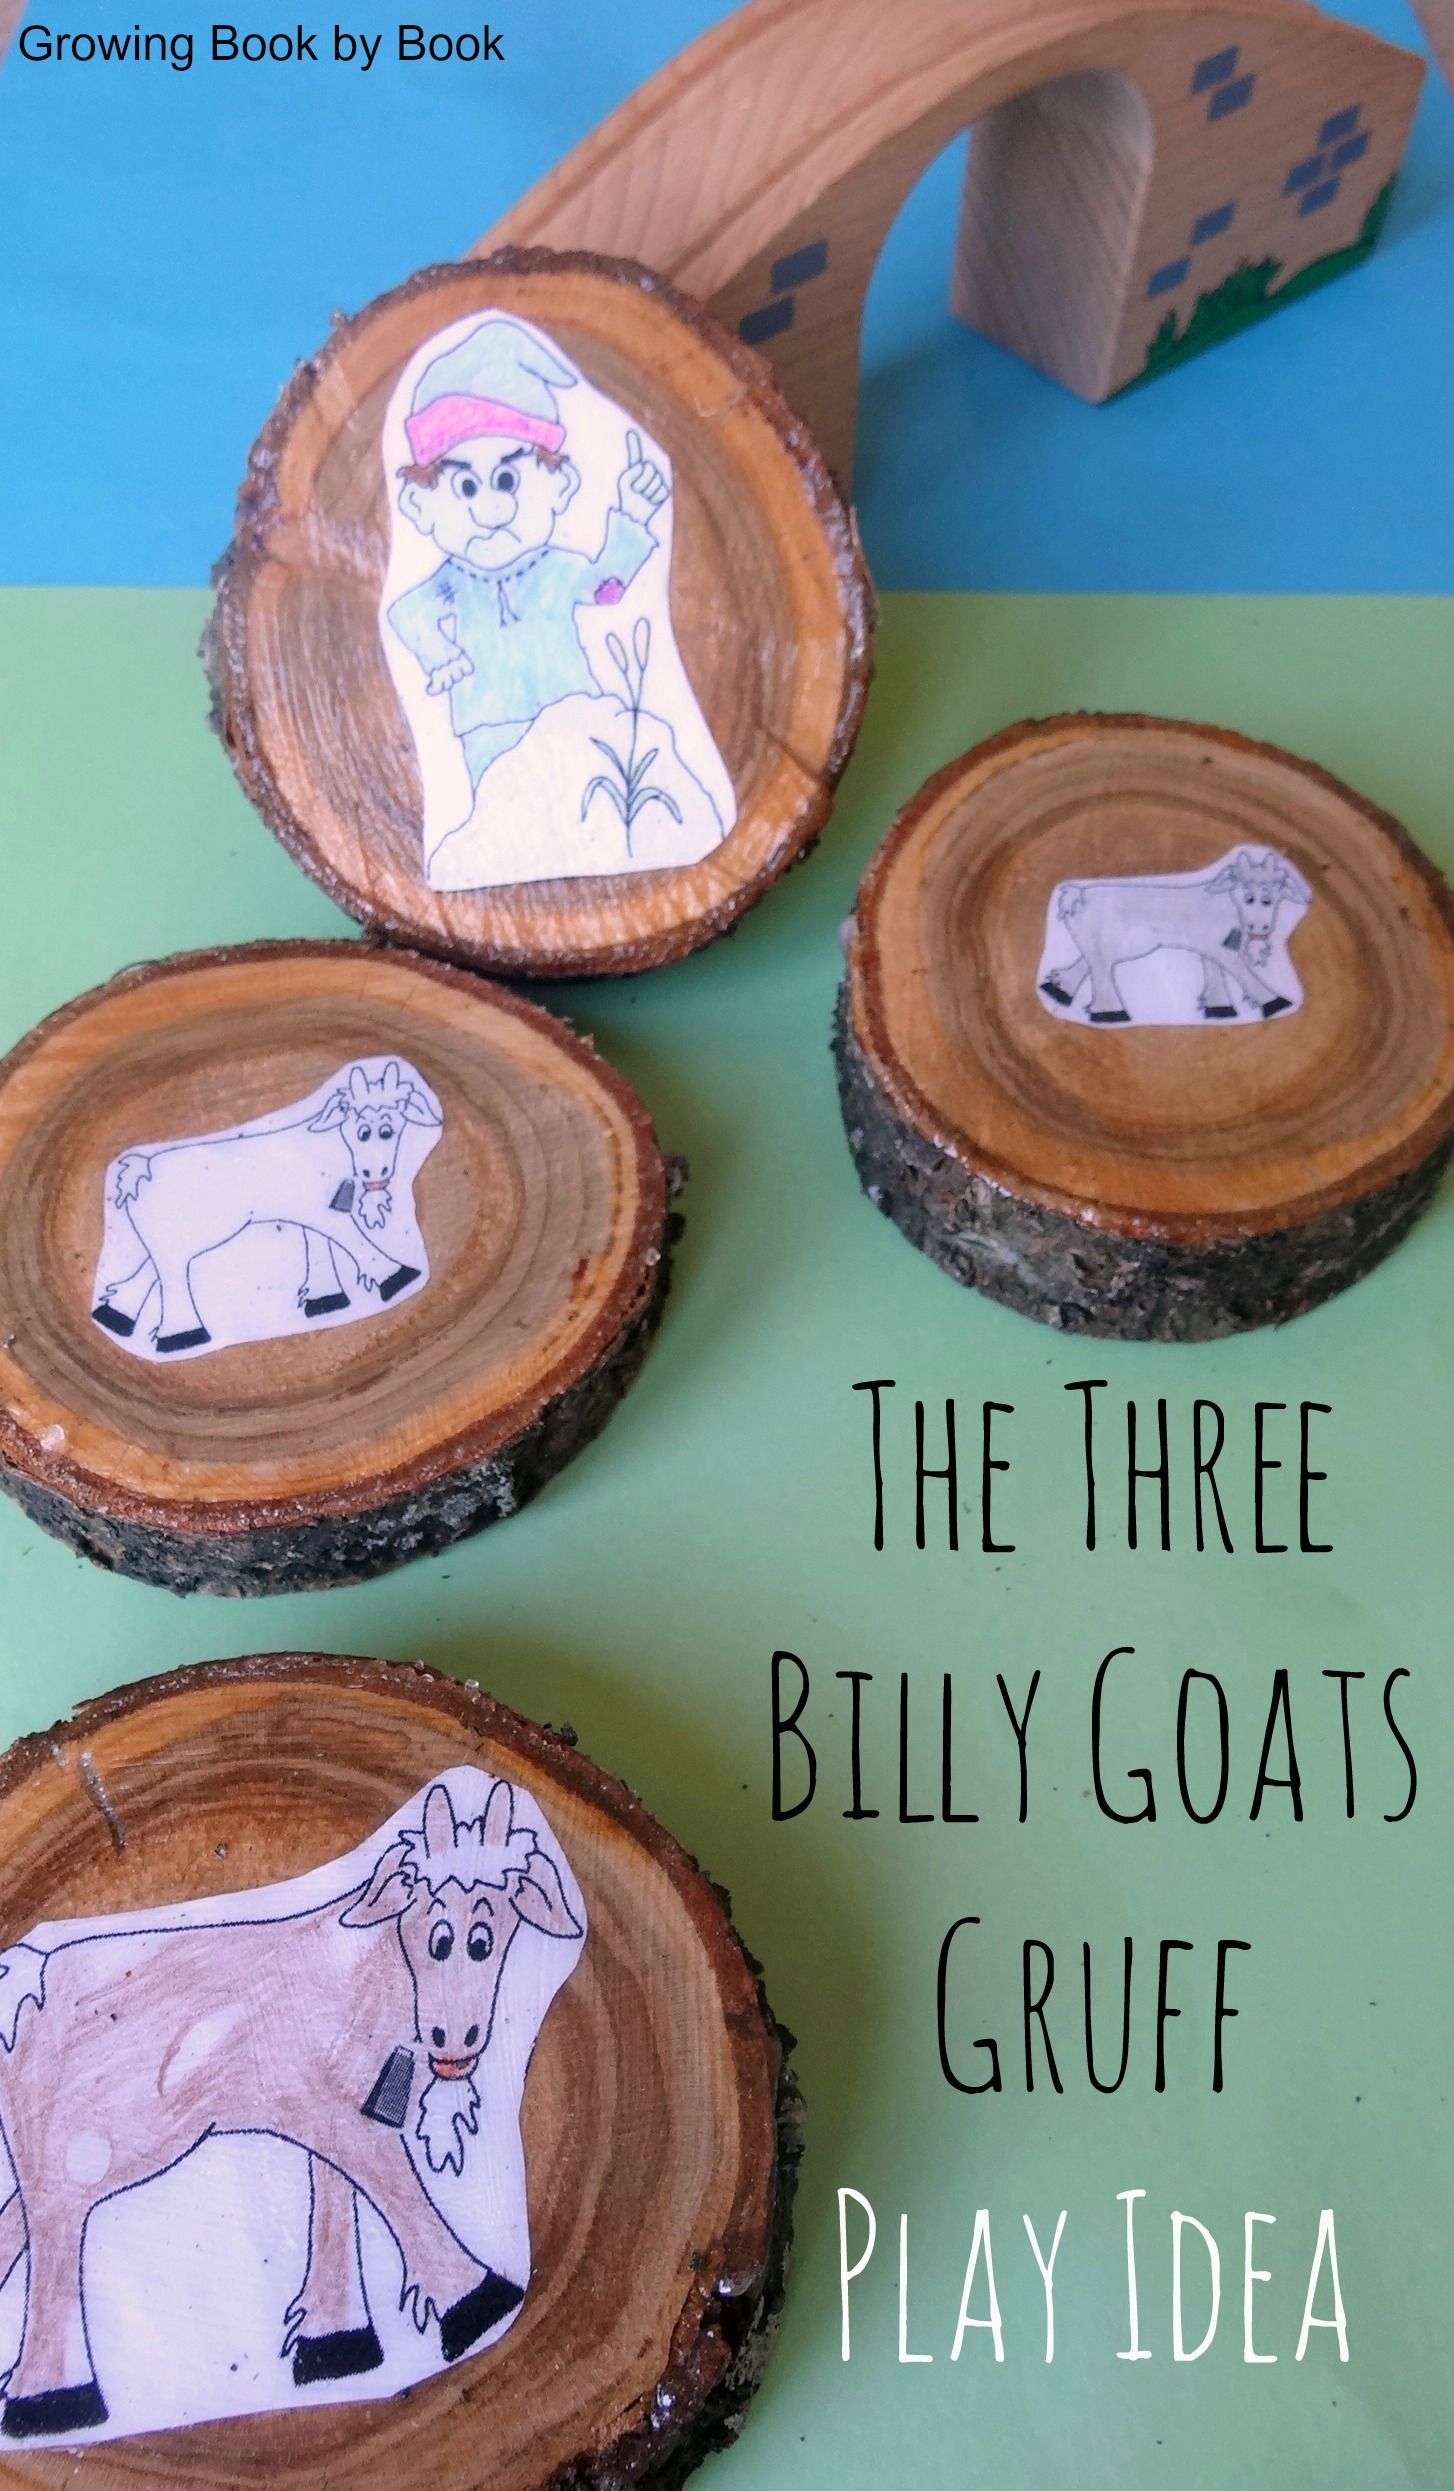 The 3 Billy Goats Gruff